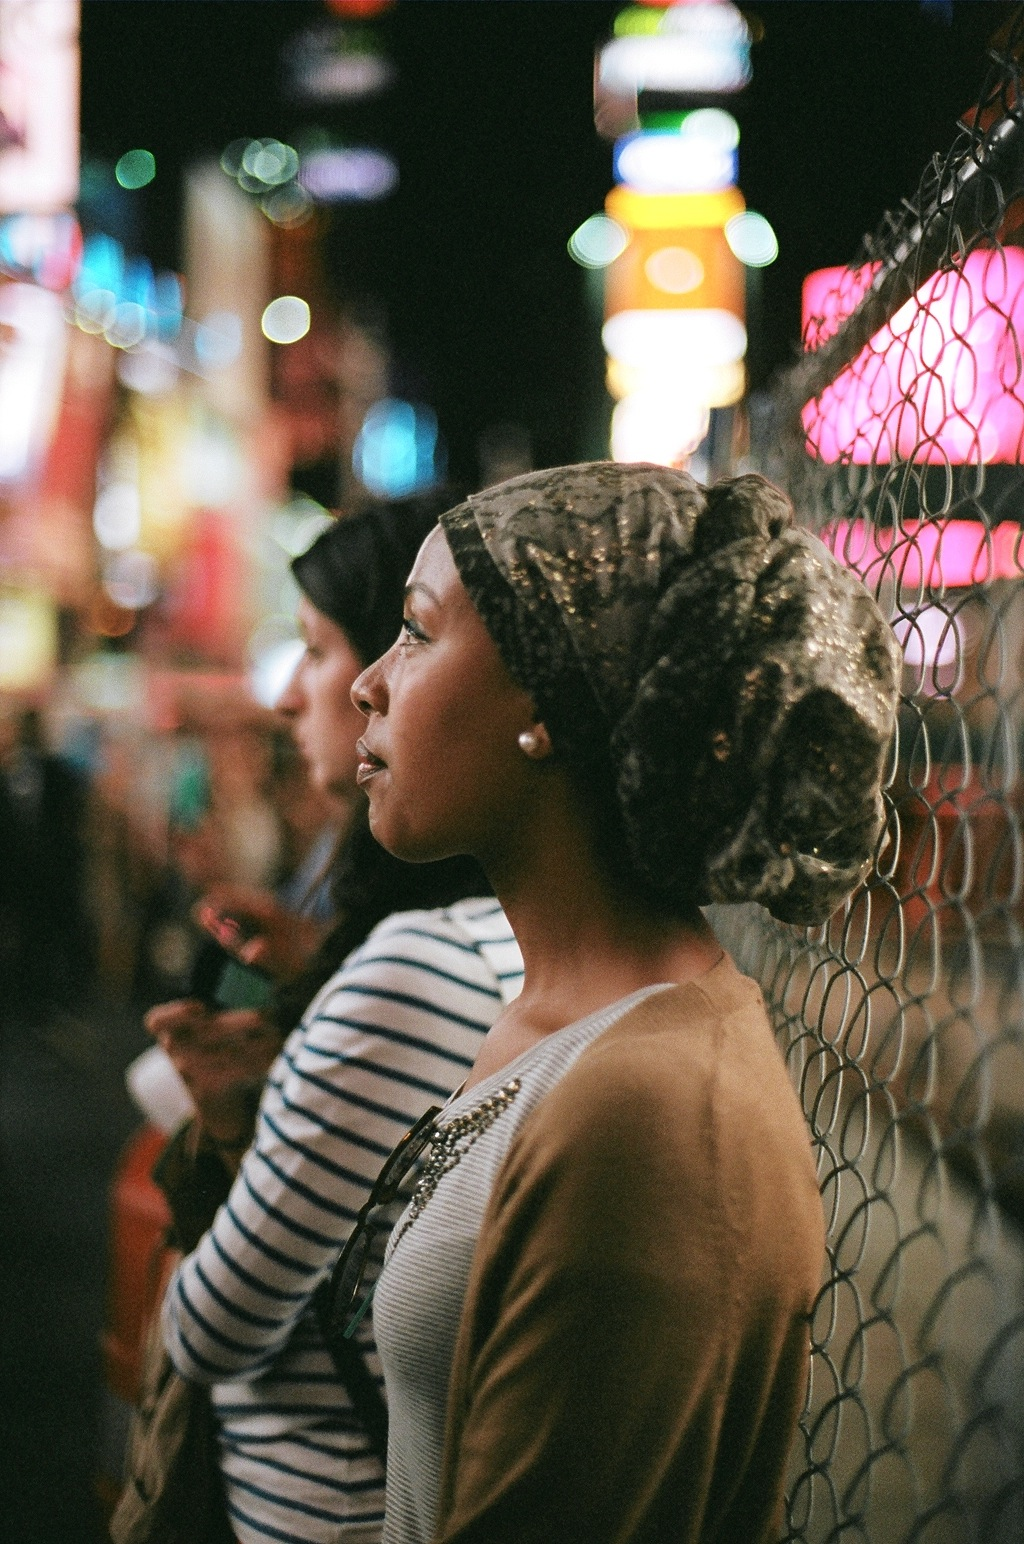 Times Square, NY // Big dreams, bright lights and all that comes with that.